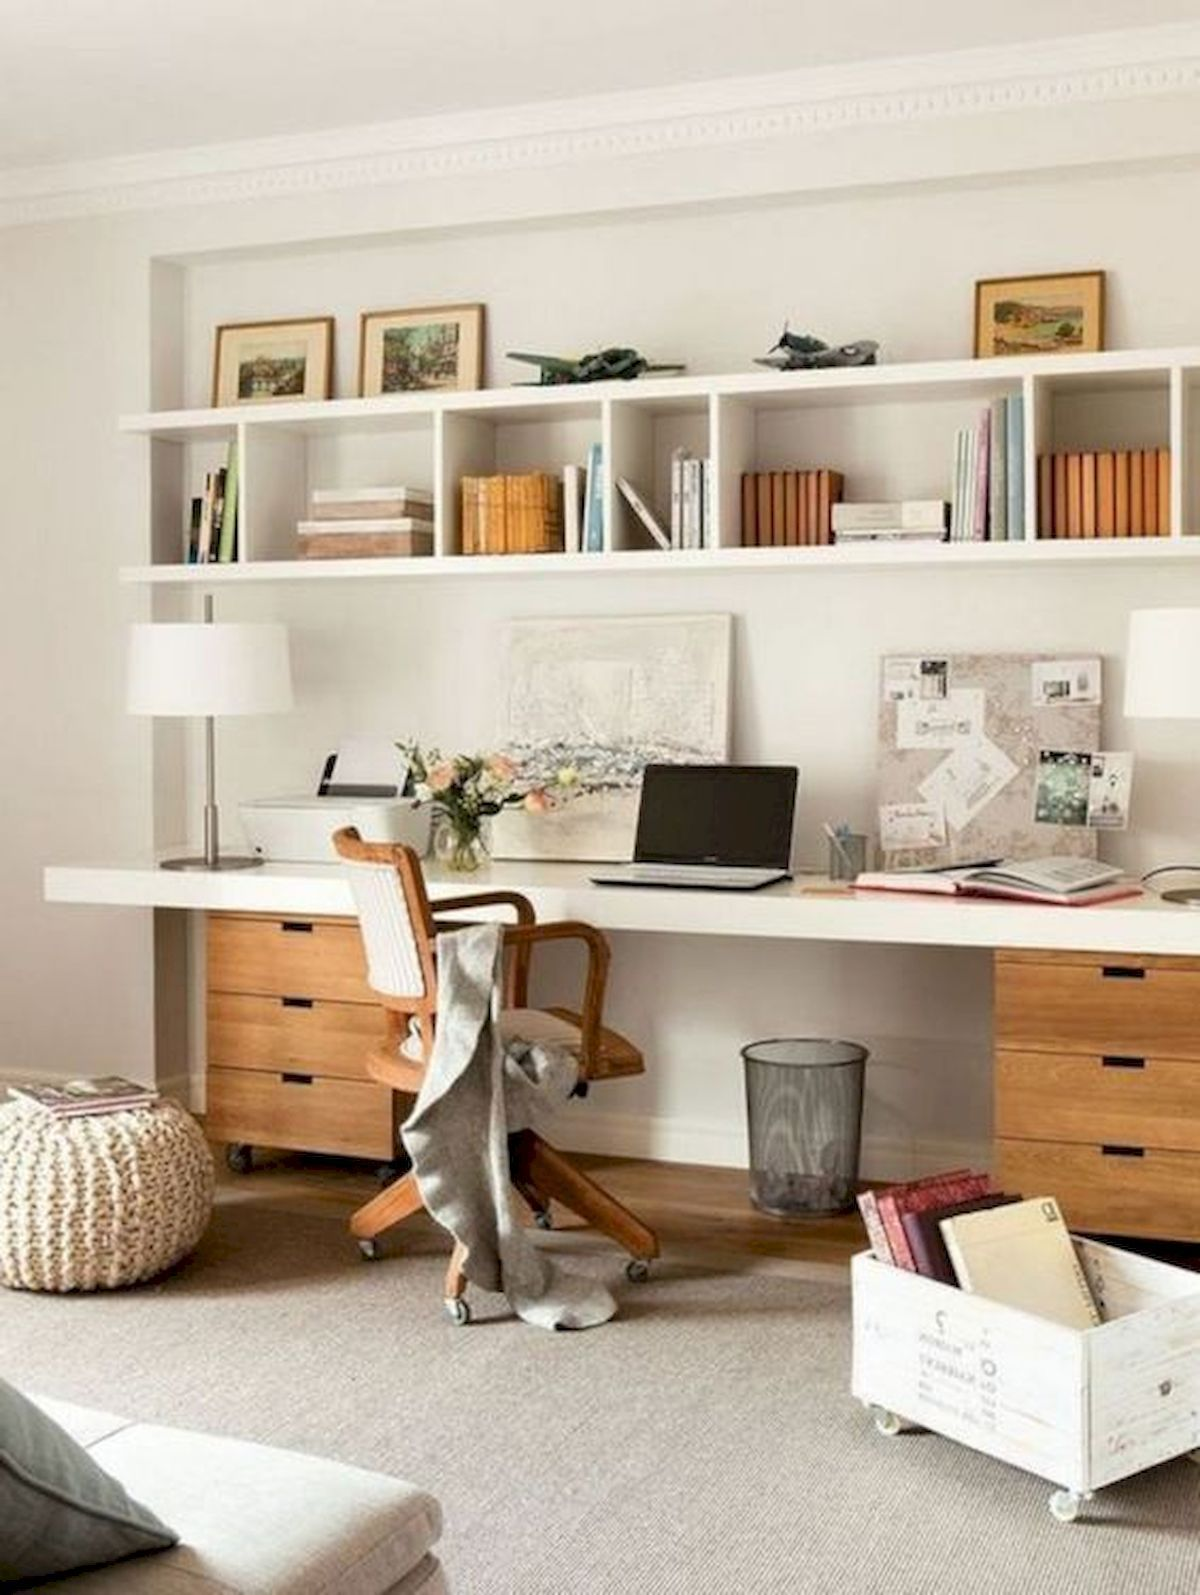 55 Incredible Diy Office Desk Design Ideas And Decor 1 In 2020 With Images Office Desk Designs Home Office Cabinets Cozy Home Office